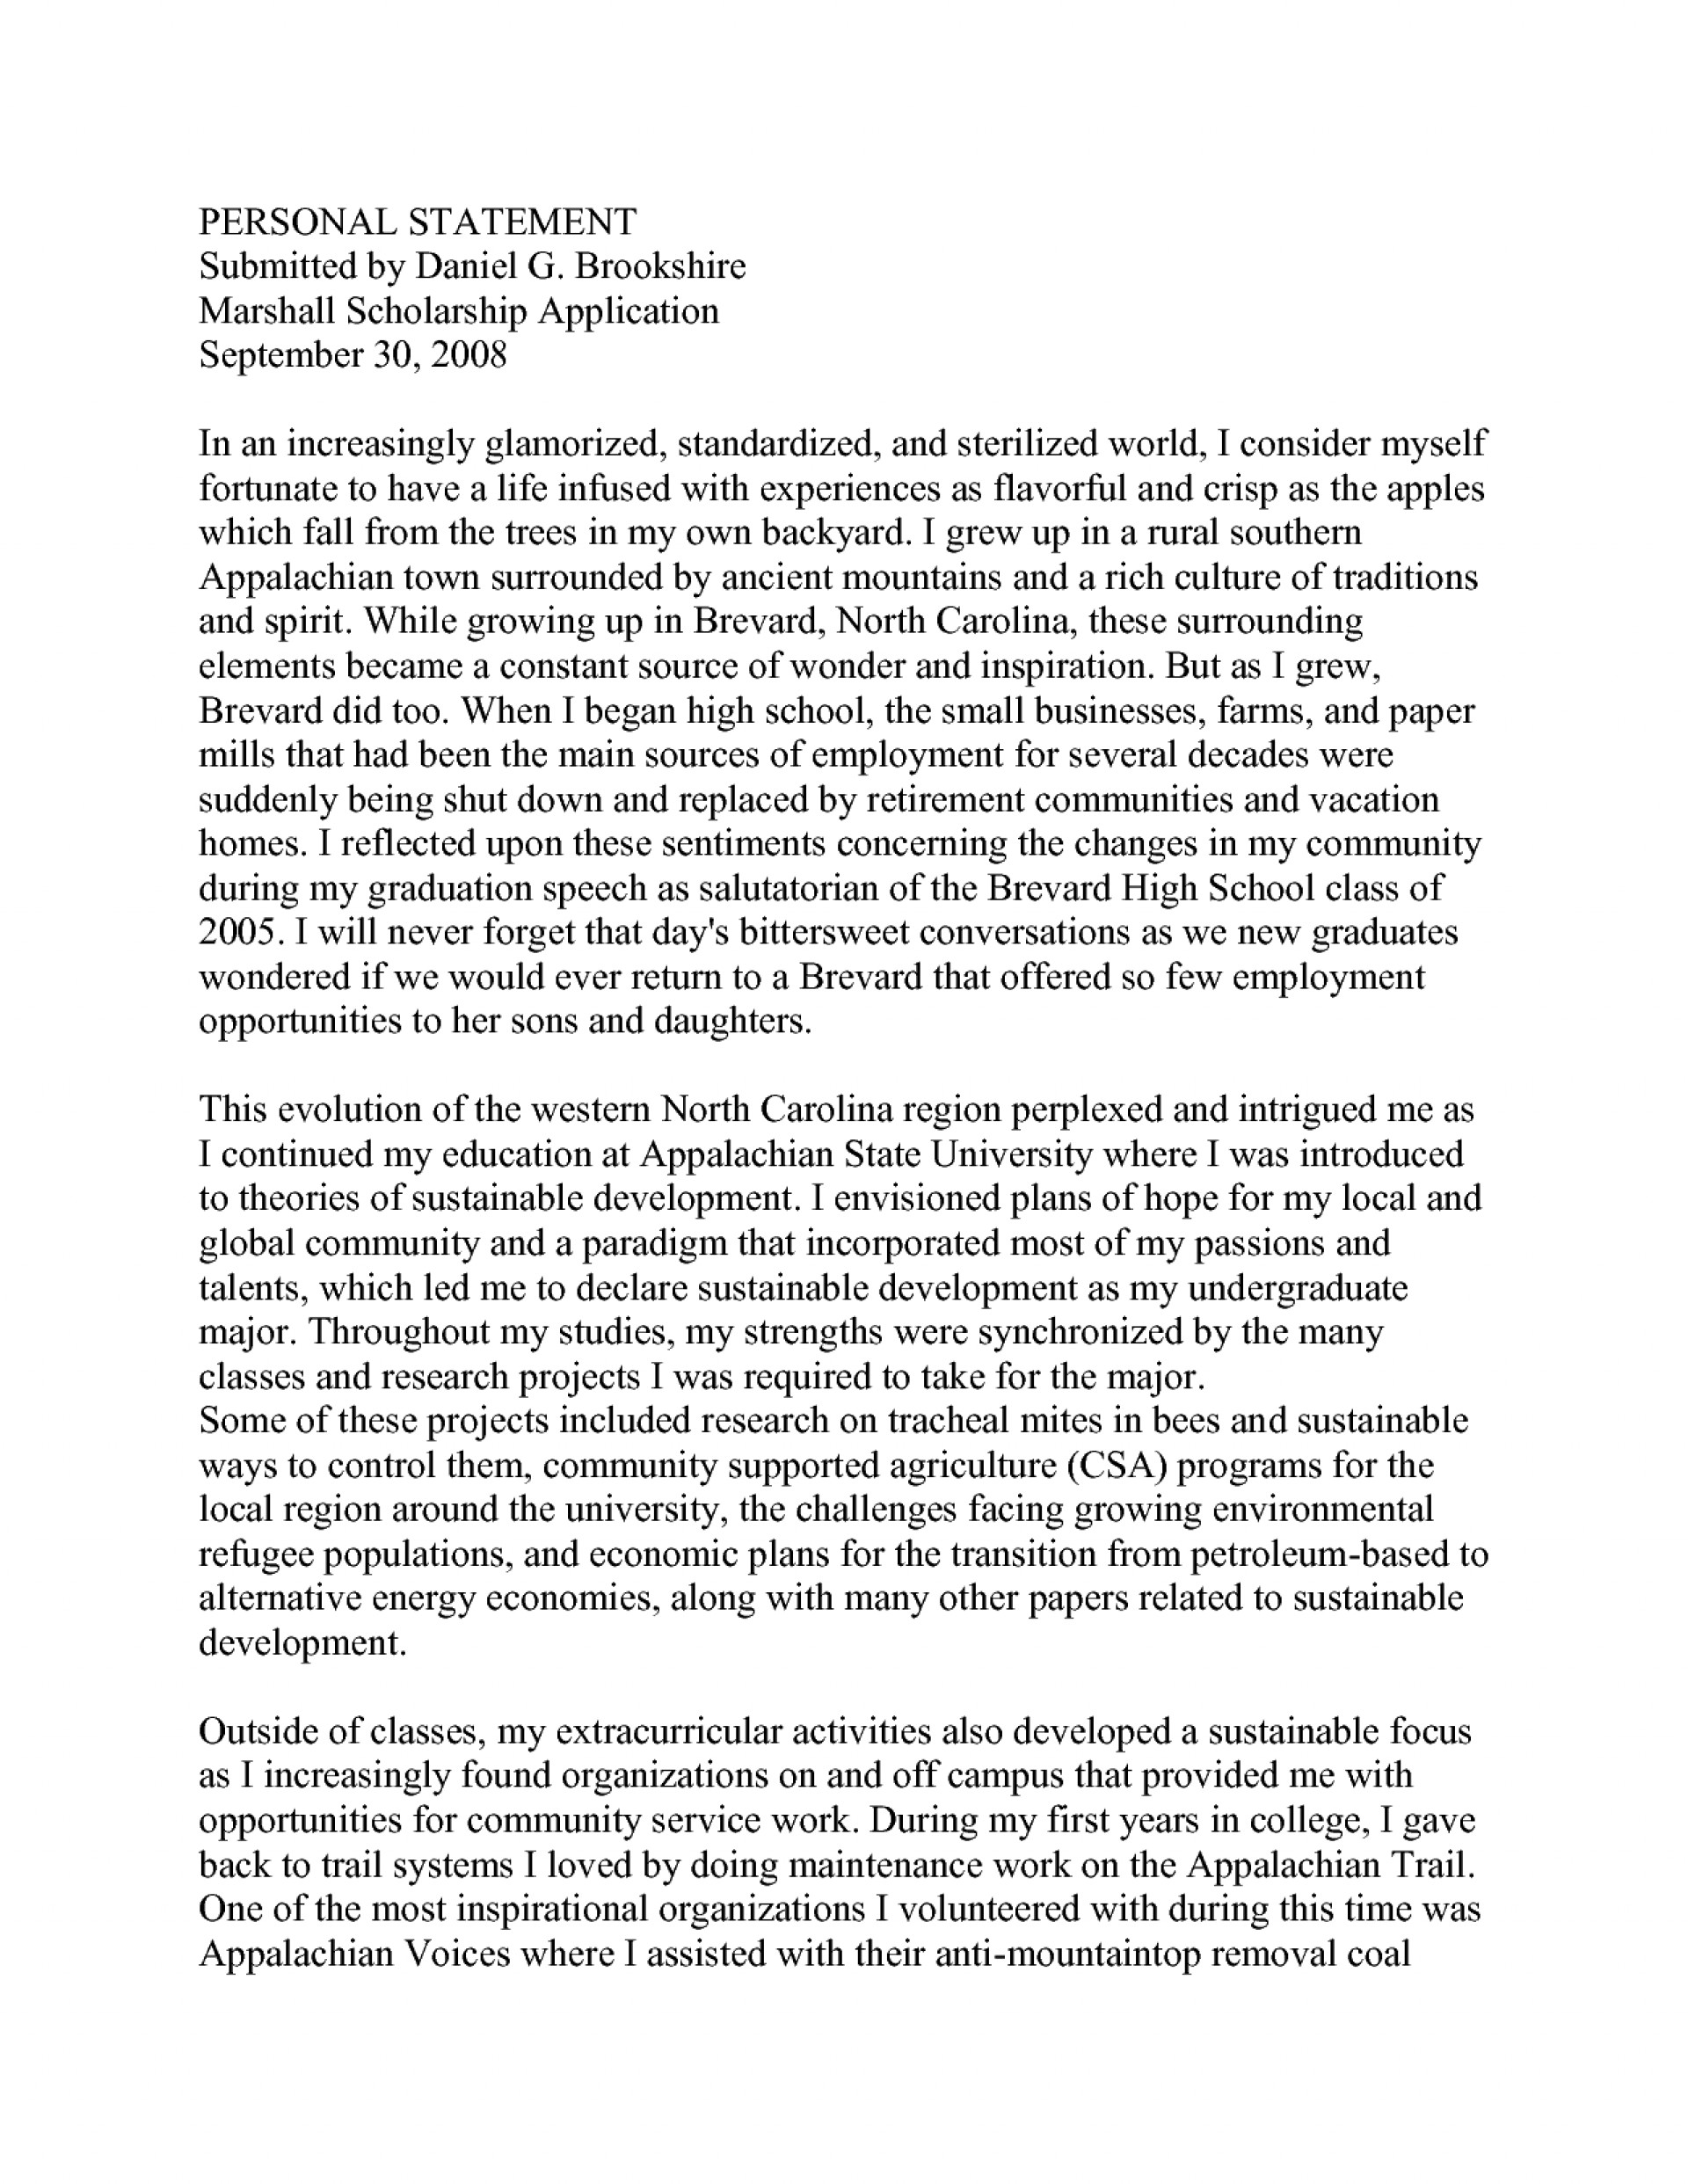 012 Heading For College Essay Scholarship Personal Statement Template Nsvwiupr Top Paper Apa Research 1920